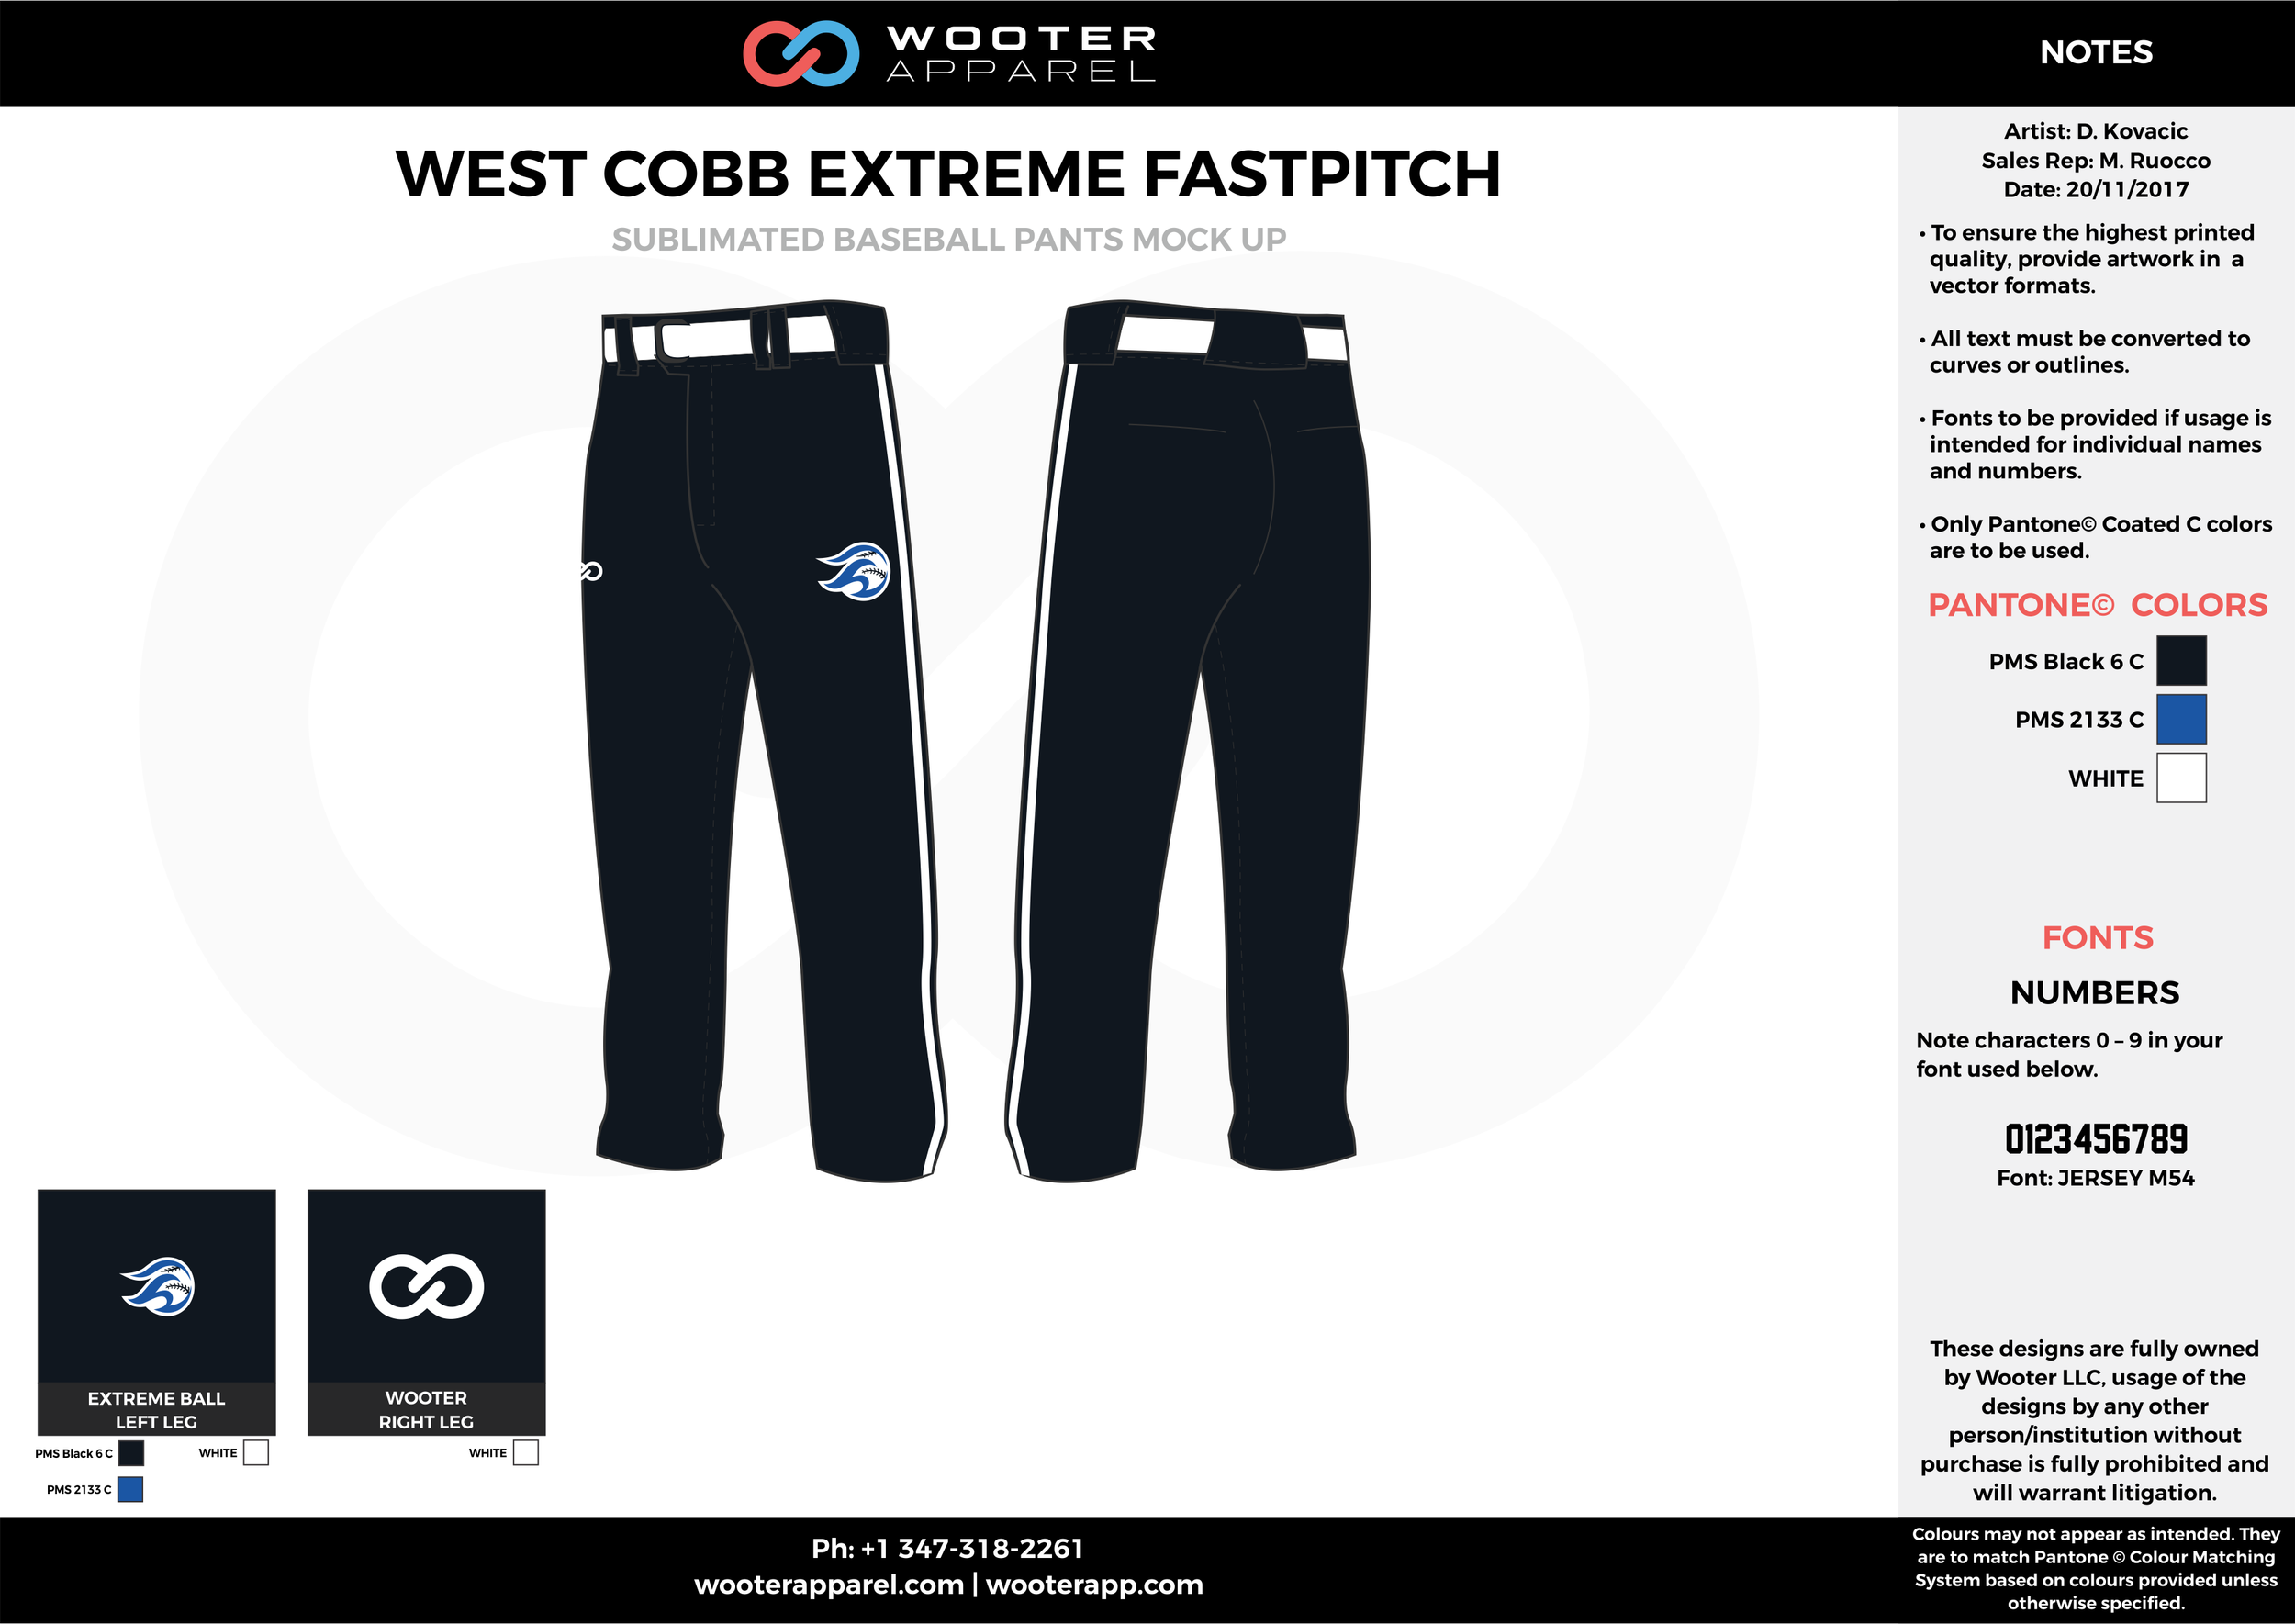 WEST COBB EXTREME FASTPITCH black blue white baseball uniforms jerseys pants